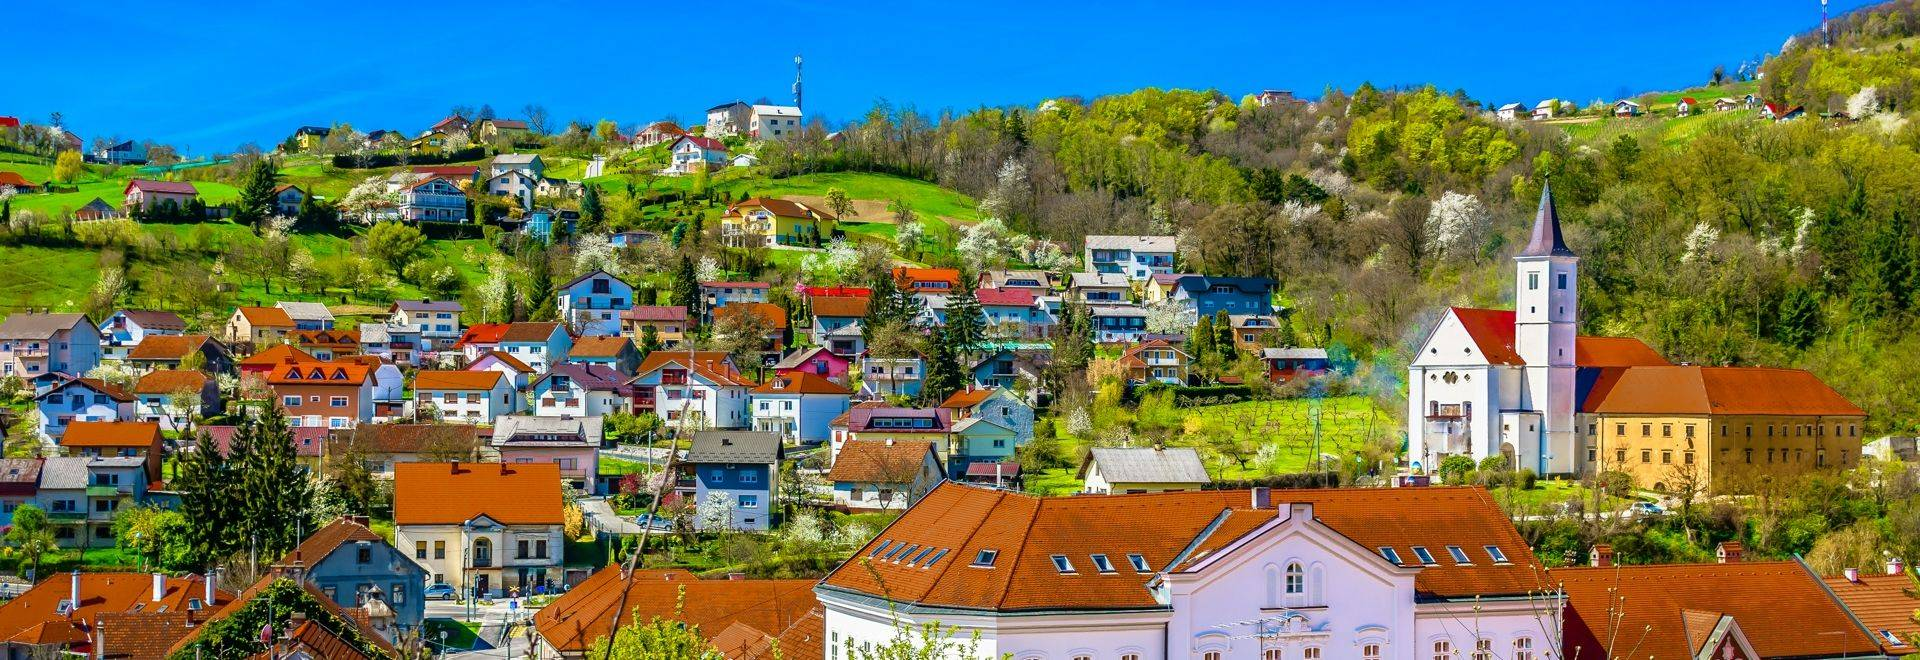 Aerial view at picturesque town Krapina cityscape in Croatia, Zagorje Region scenery.